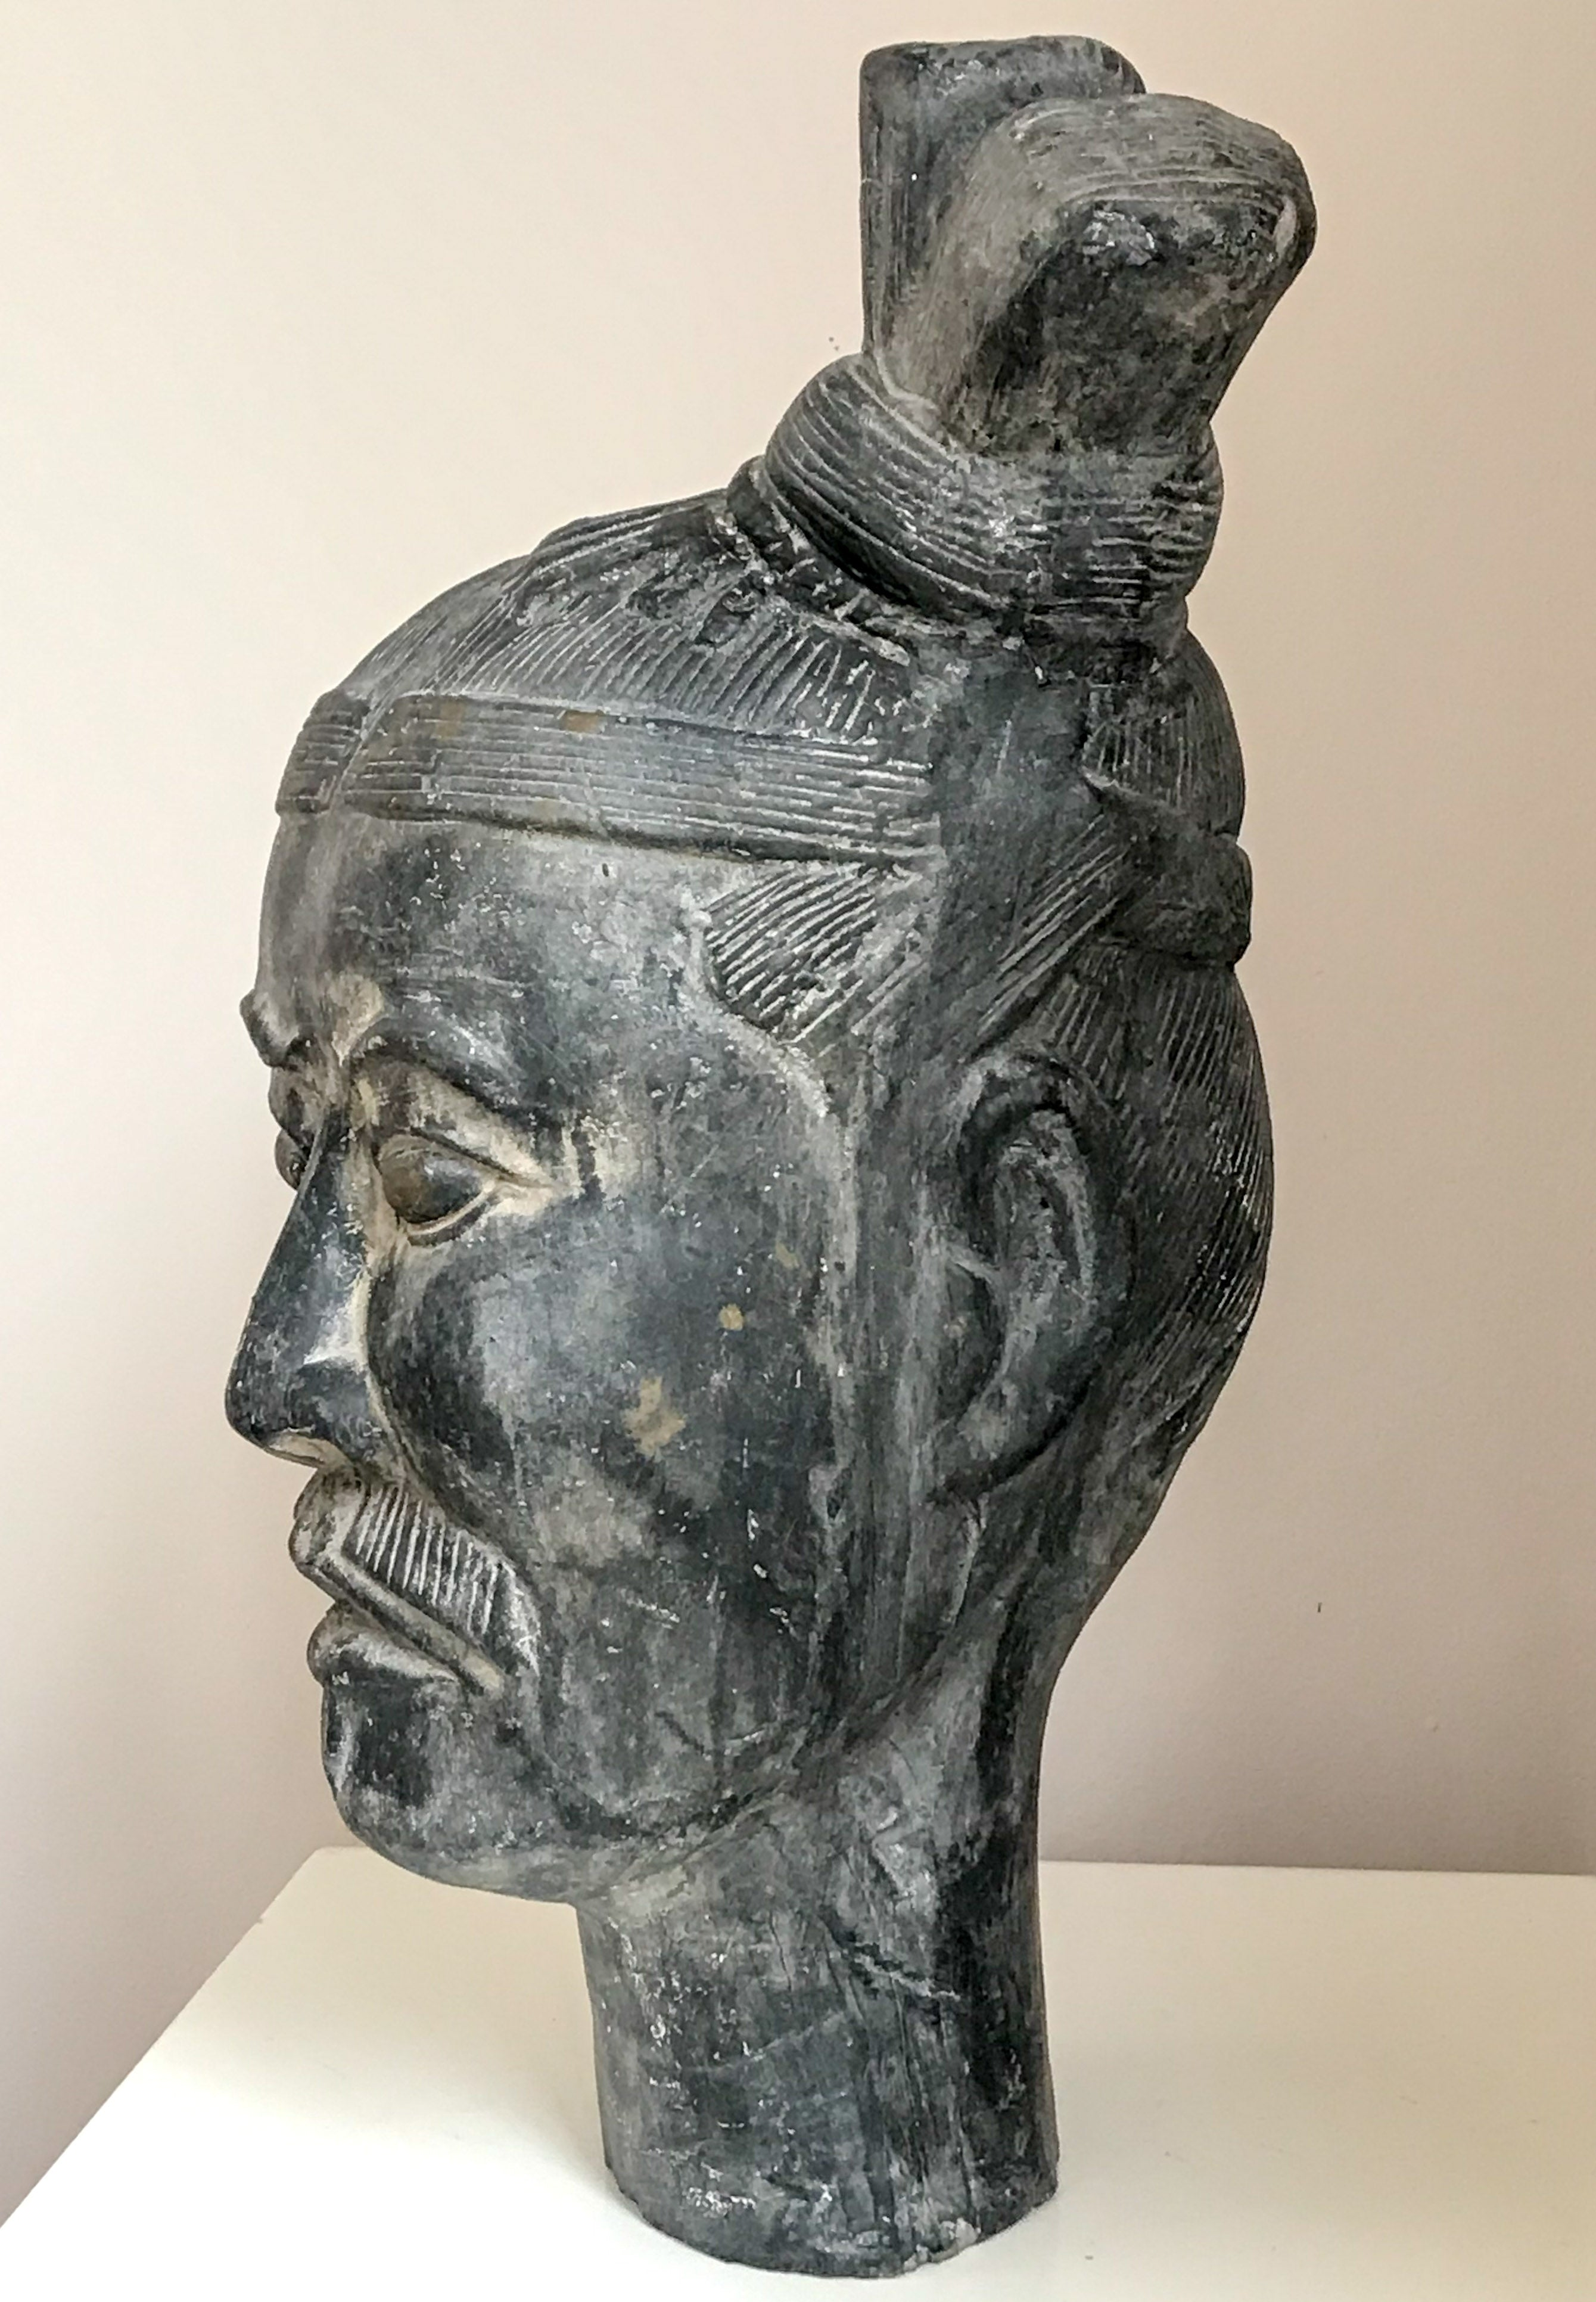 20th Century Chinese Terracotta Army Soldier Modelled In Clay.